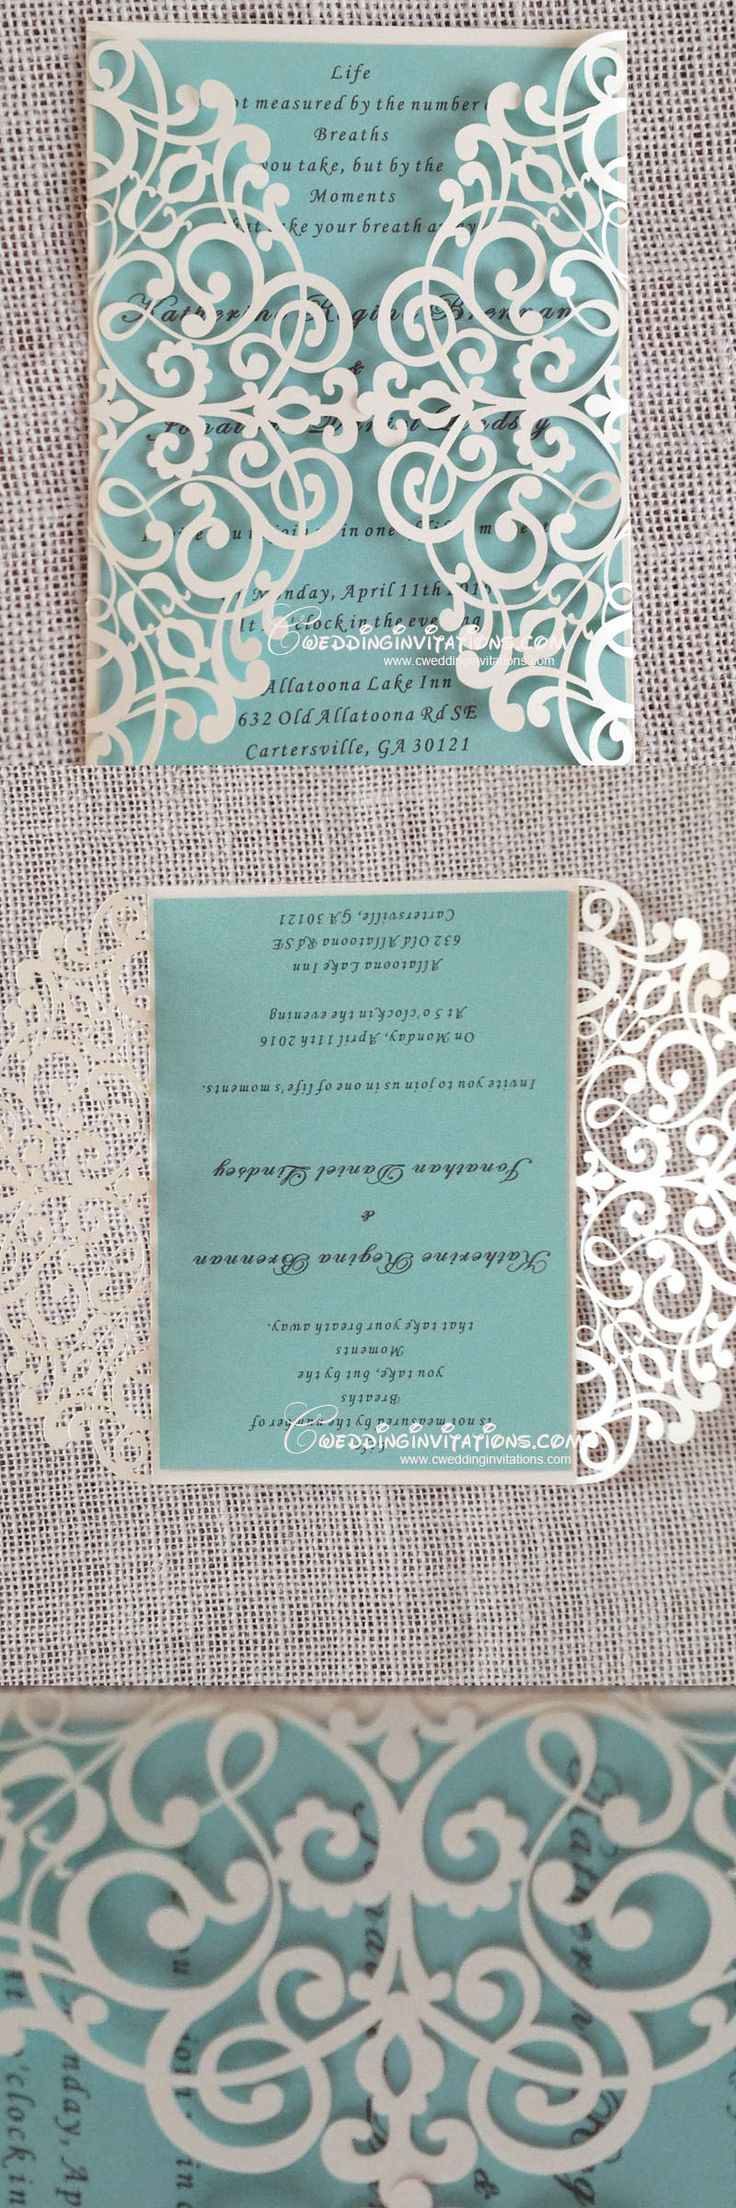 diamond wedding invitations%0A tiffany blue laser cut wedding invitations  laser cut wedding invitations  wedding  invitations  wedding cards  www